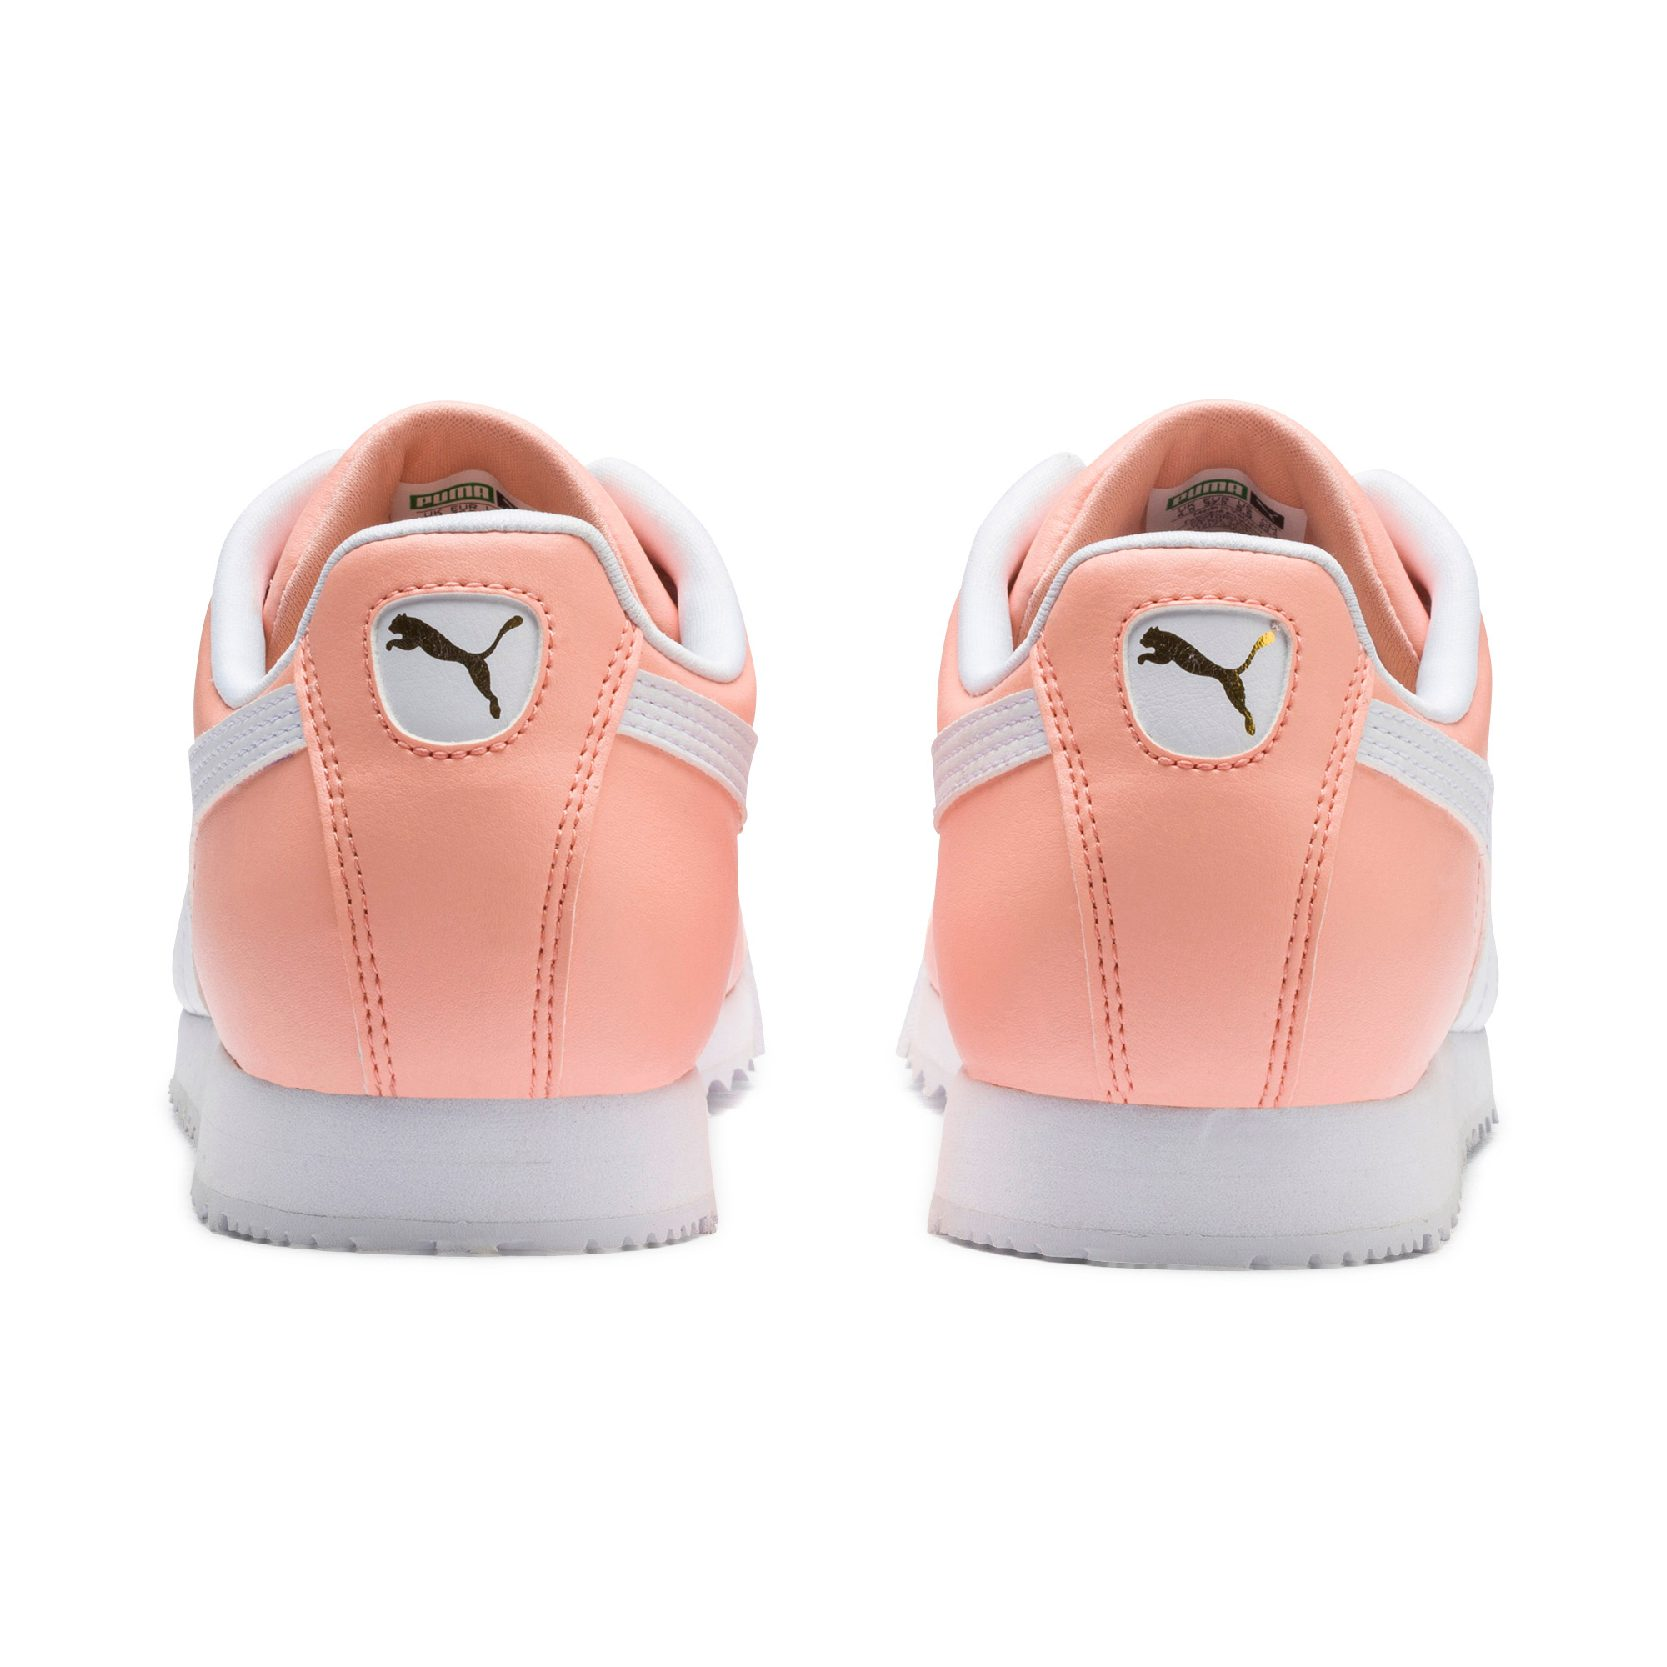 Puma Men S Roma Basic Peach Bud Puma White Sneakers